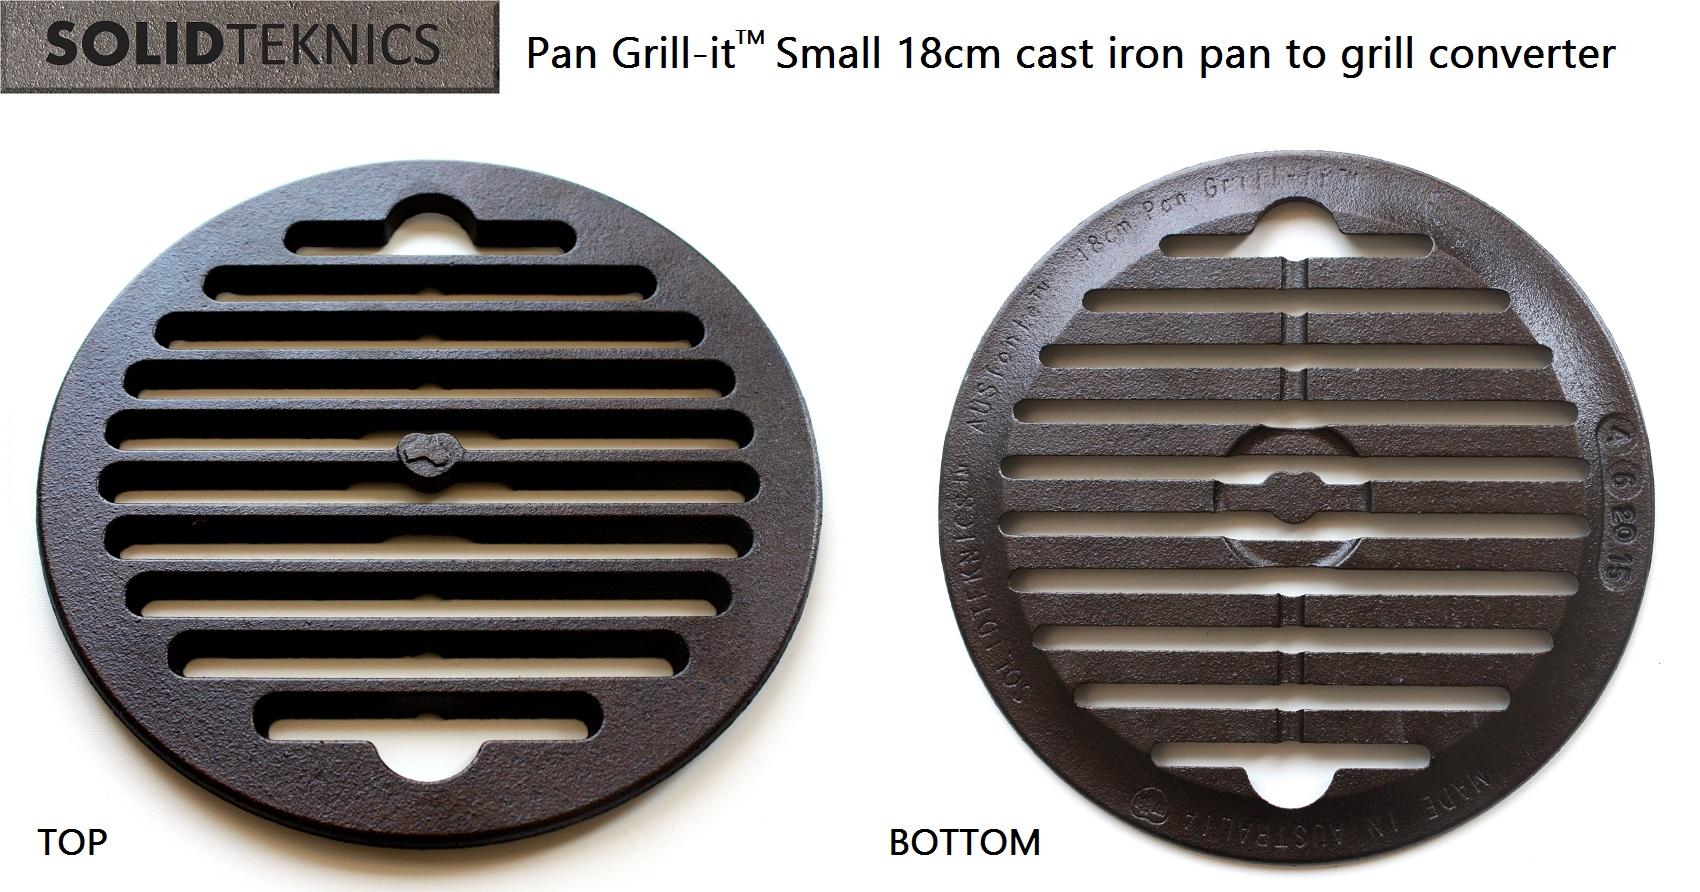 Pan Grill-it cast iron grill insert top and bottom.jpg